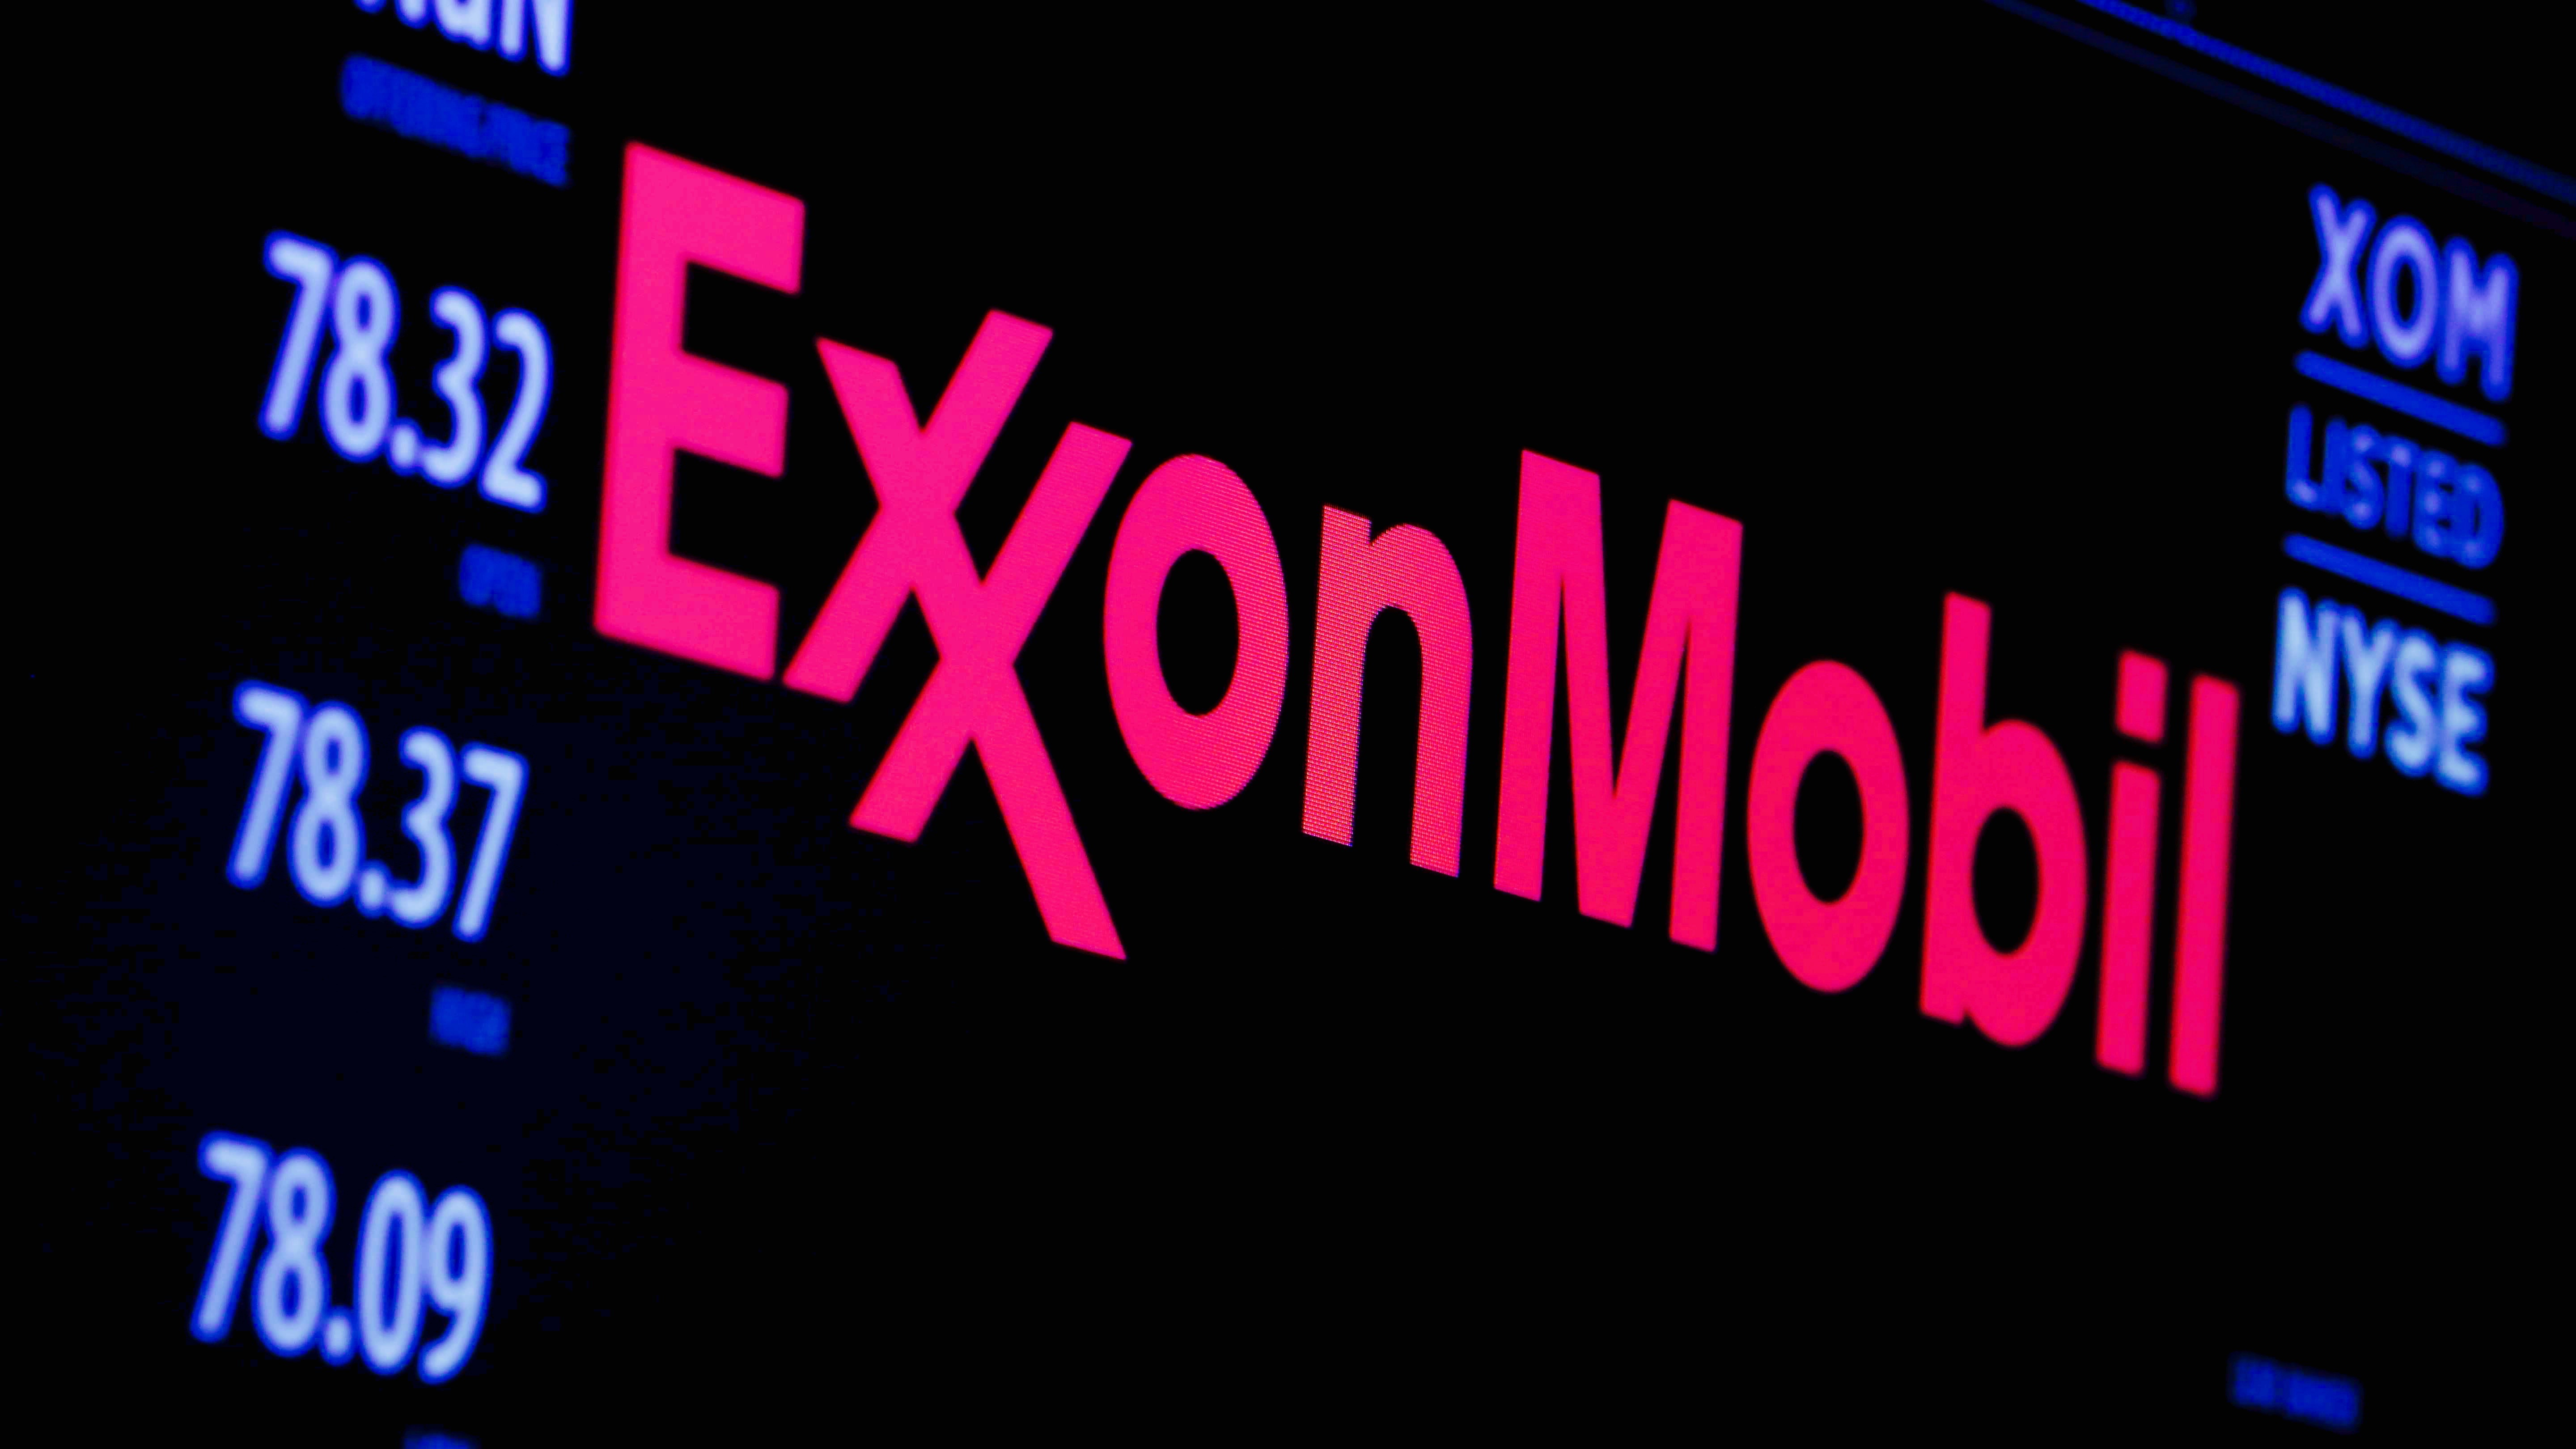 The logo of Exxon Mobil Corporation